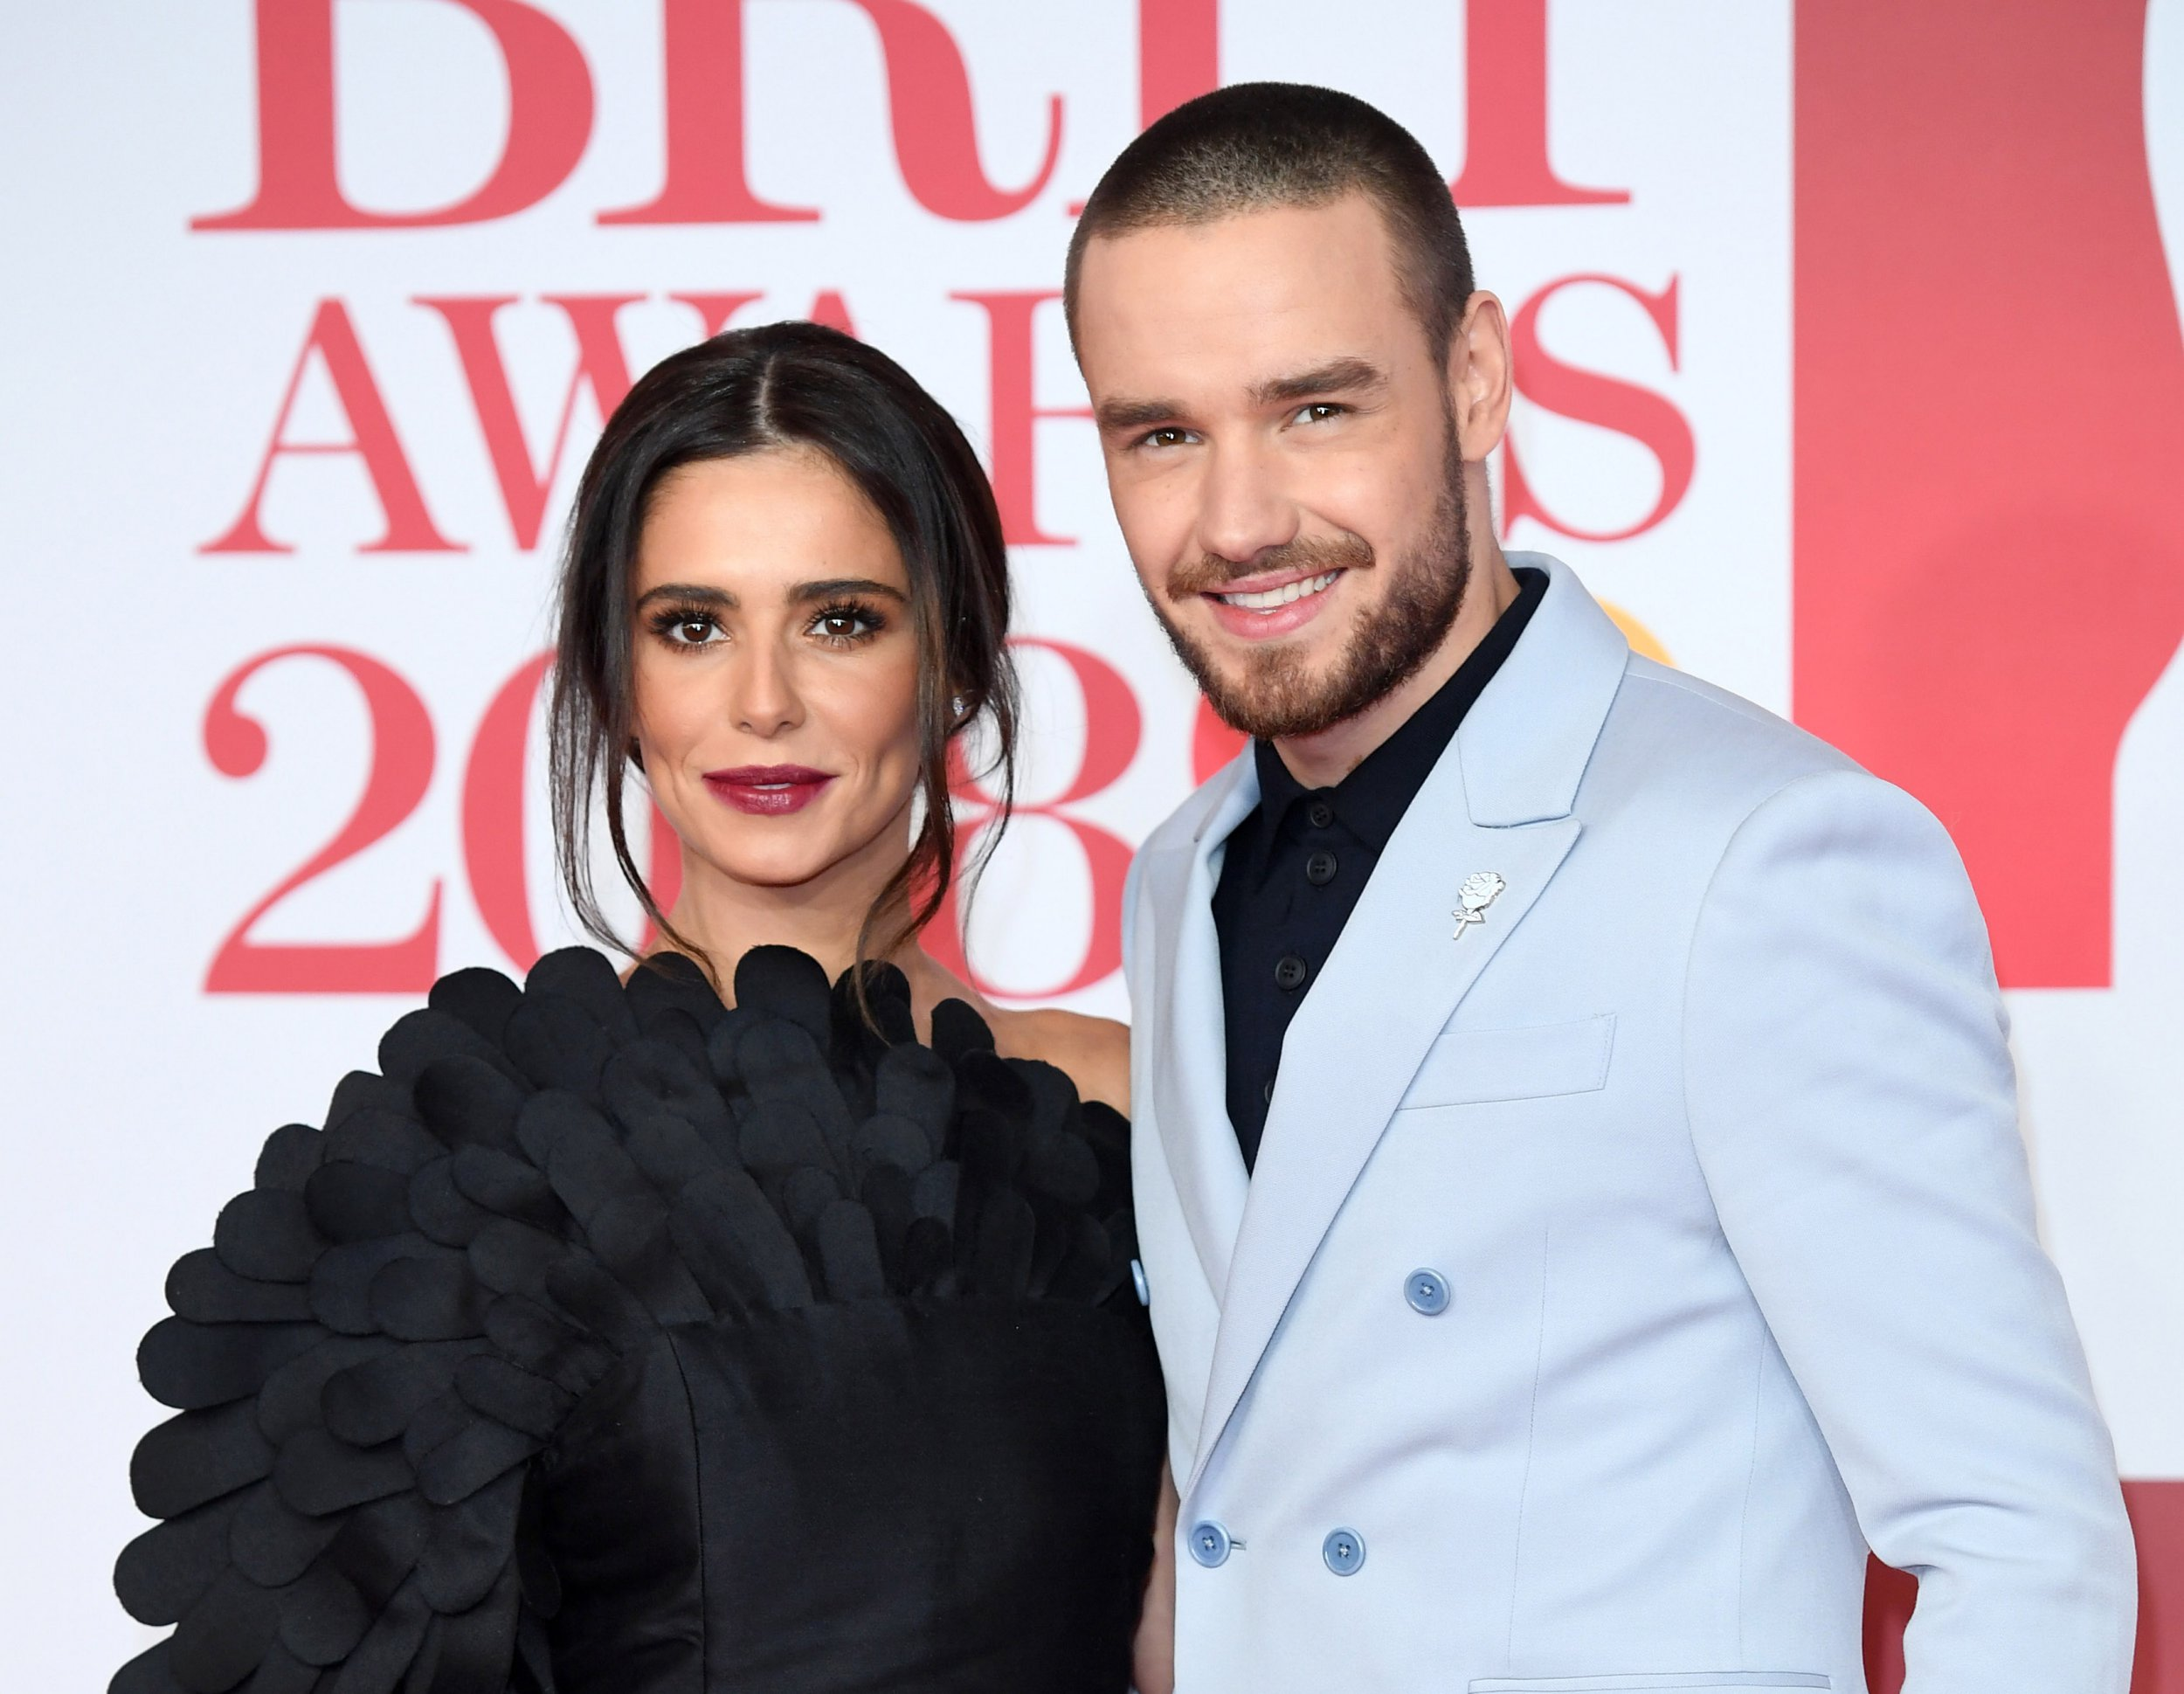 Liam Payne is 'in trouble' with Cheryl after revealing her pet name